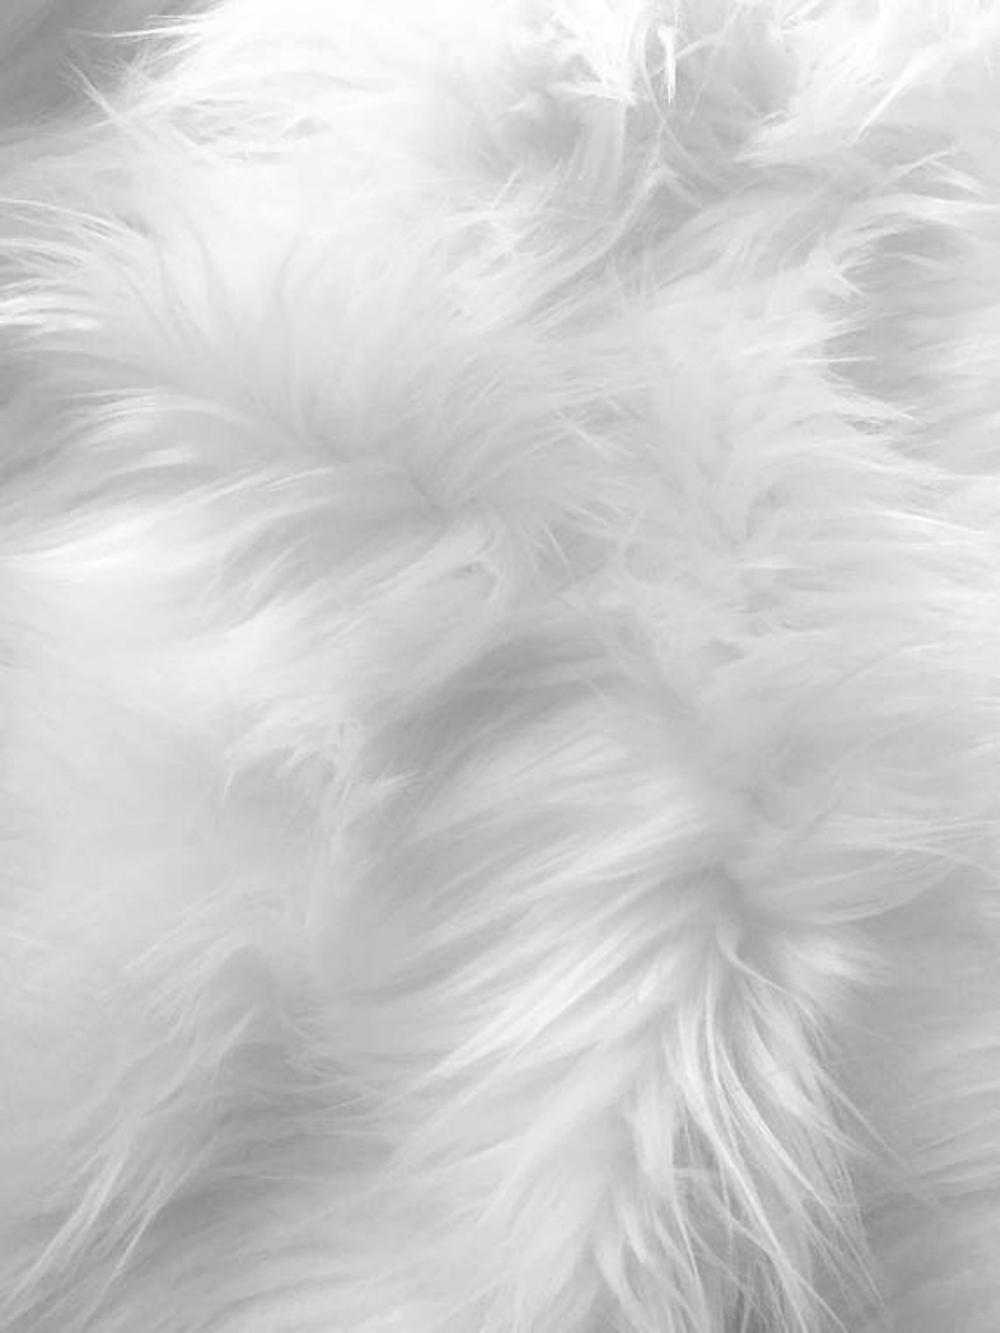 White 2 Inch Long Pile Faux Fur Fabric By The Yard Sku 3031 Etsy White Aesthetic Faux Fur Fabric Fur Fabrics